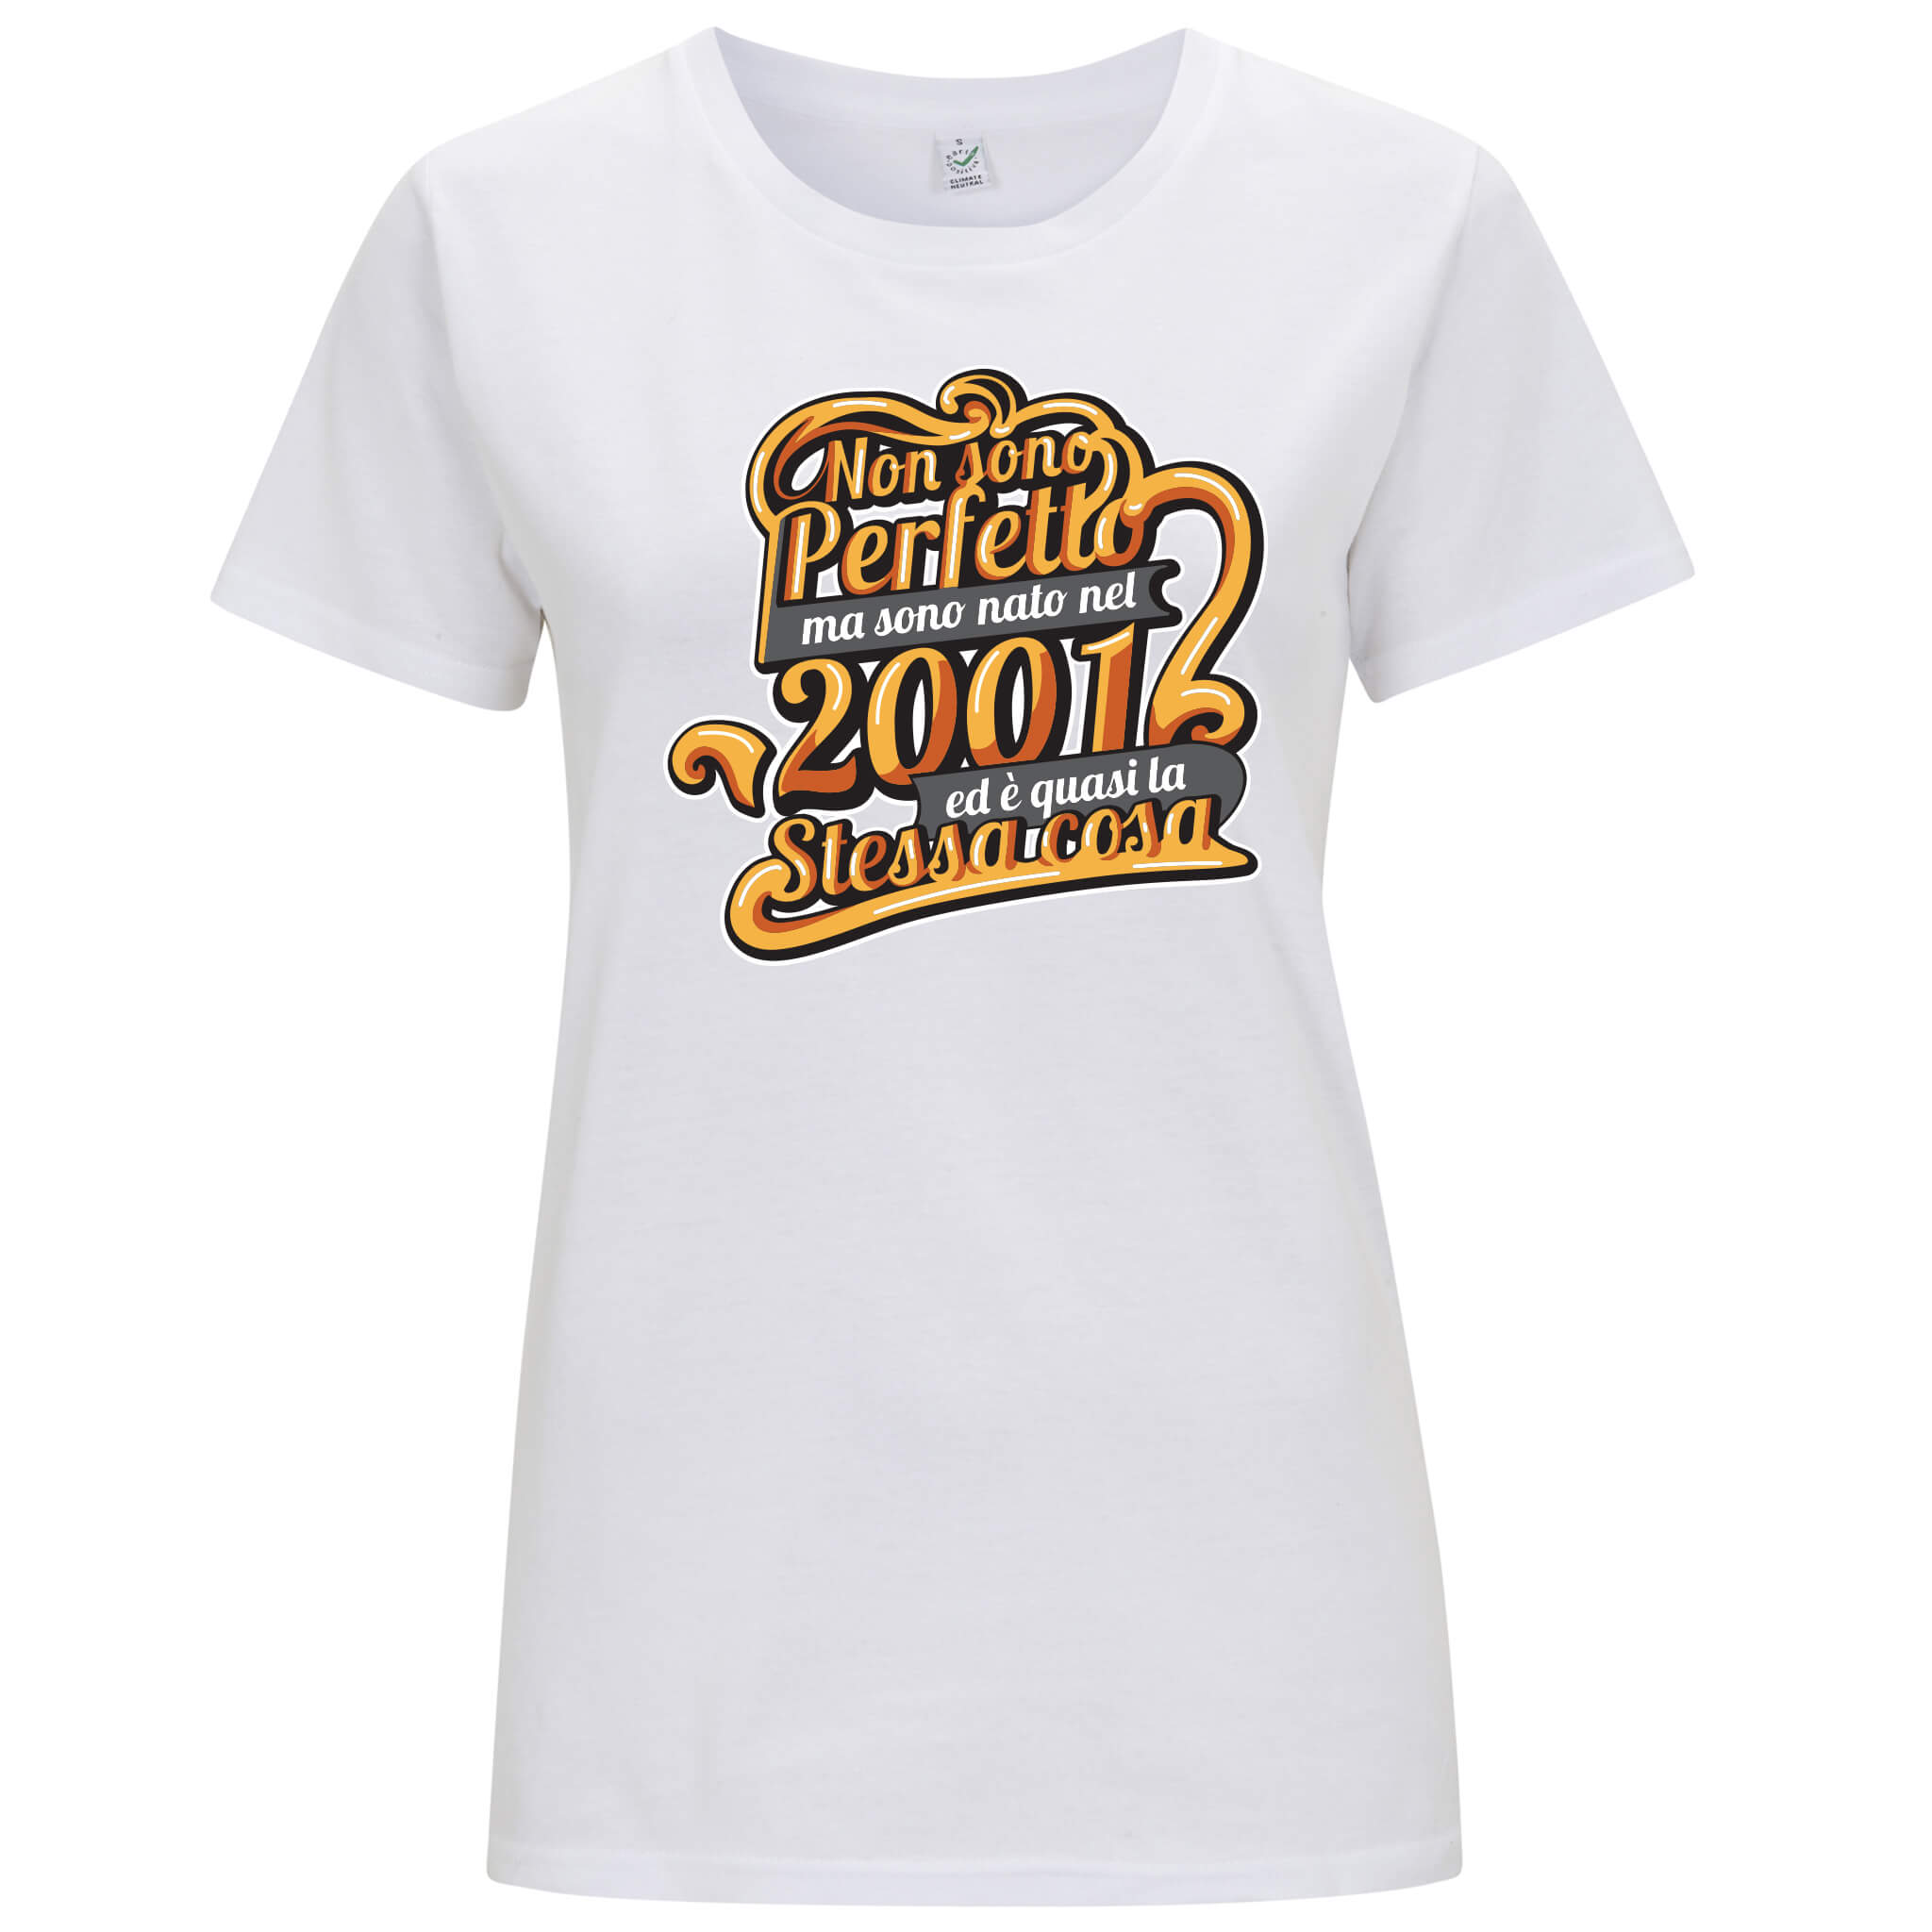 """Nato nel 2001"" - T-shirt Donna - T-Shirt by Fol The Brand"